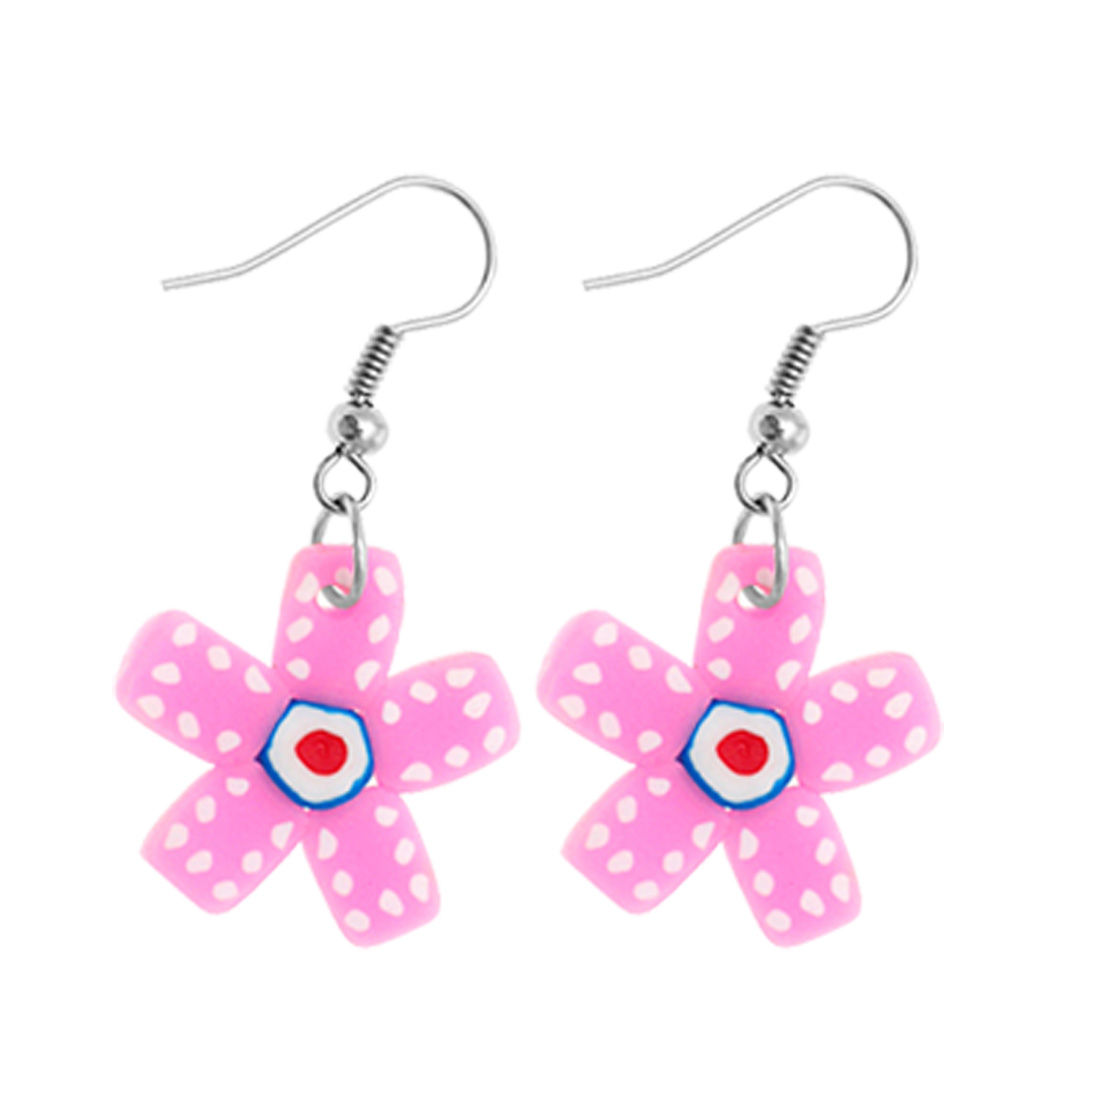 Fashion Jewelry Unique Handcraft Soft Argil Pink Winnower Flower Earrings